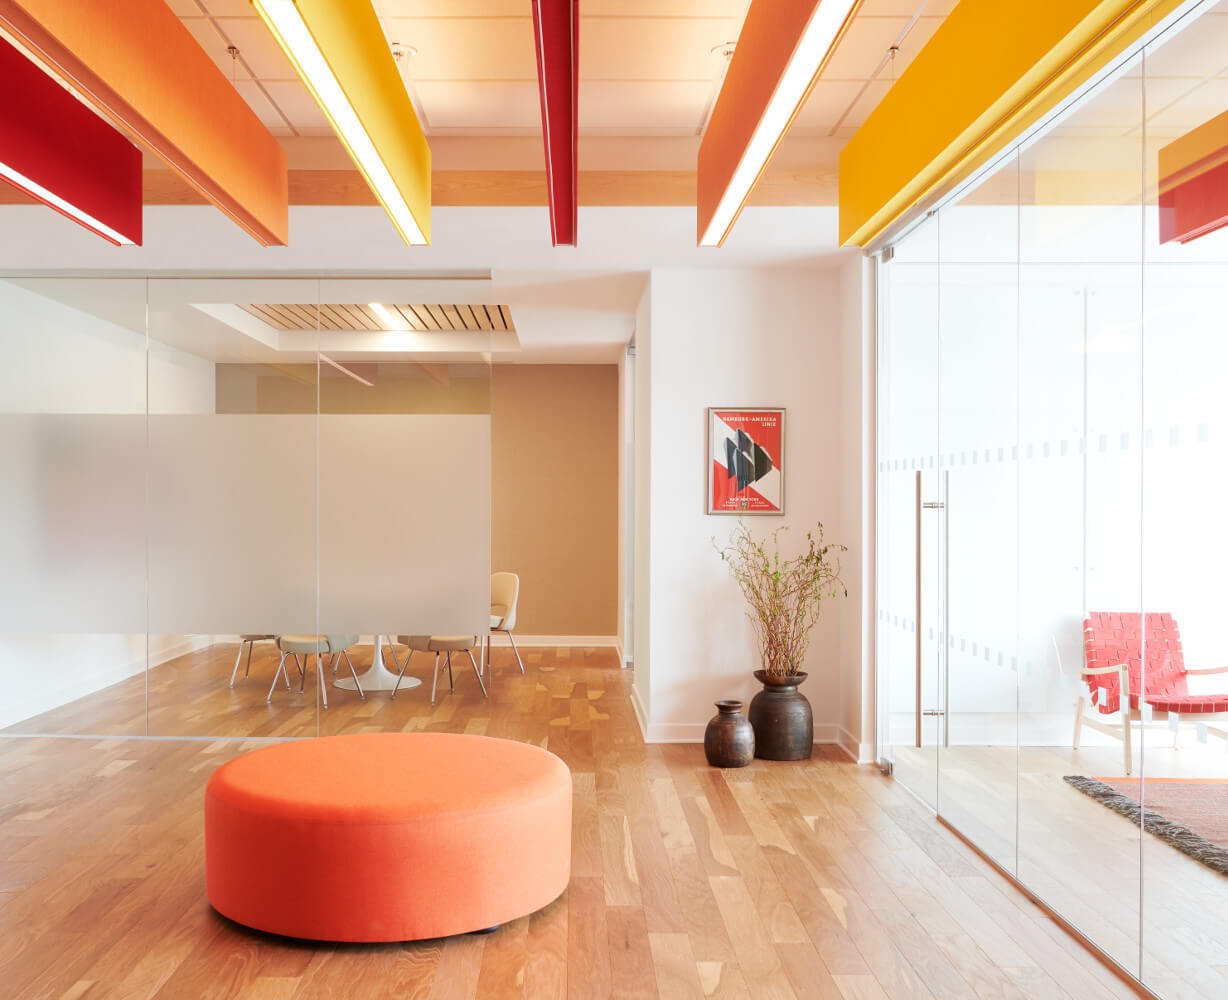 open plan with vibrant colors transforms the office space